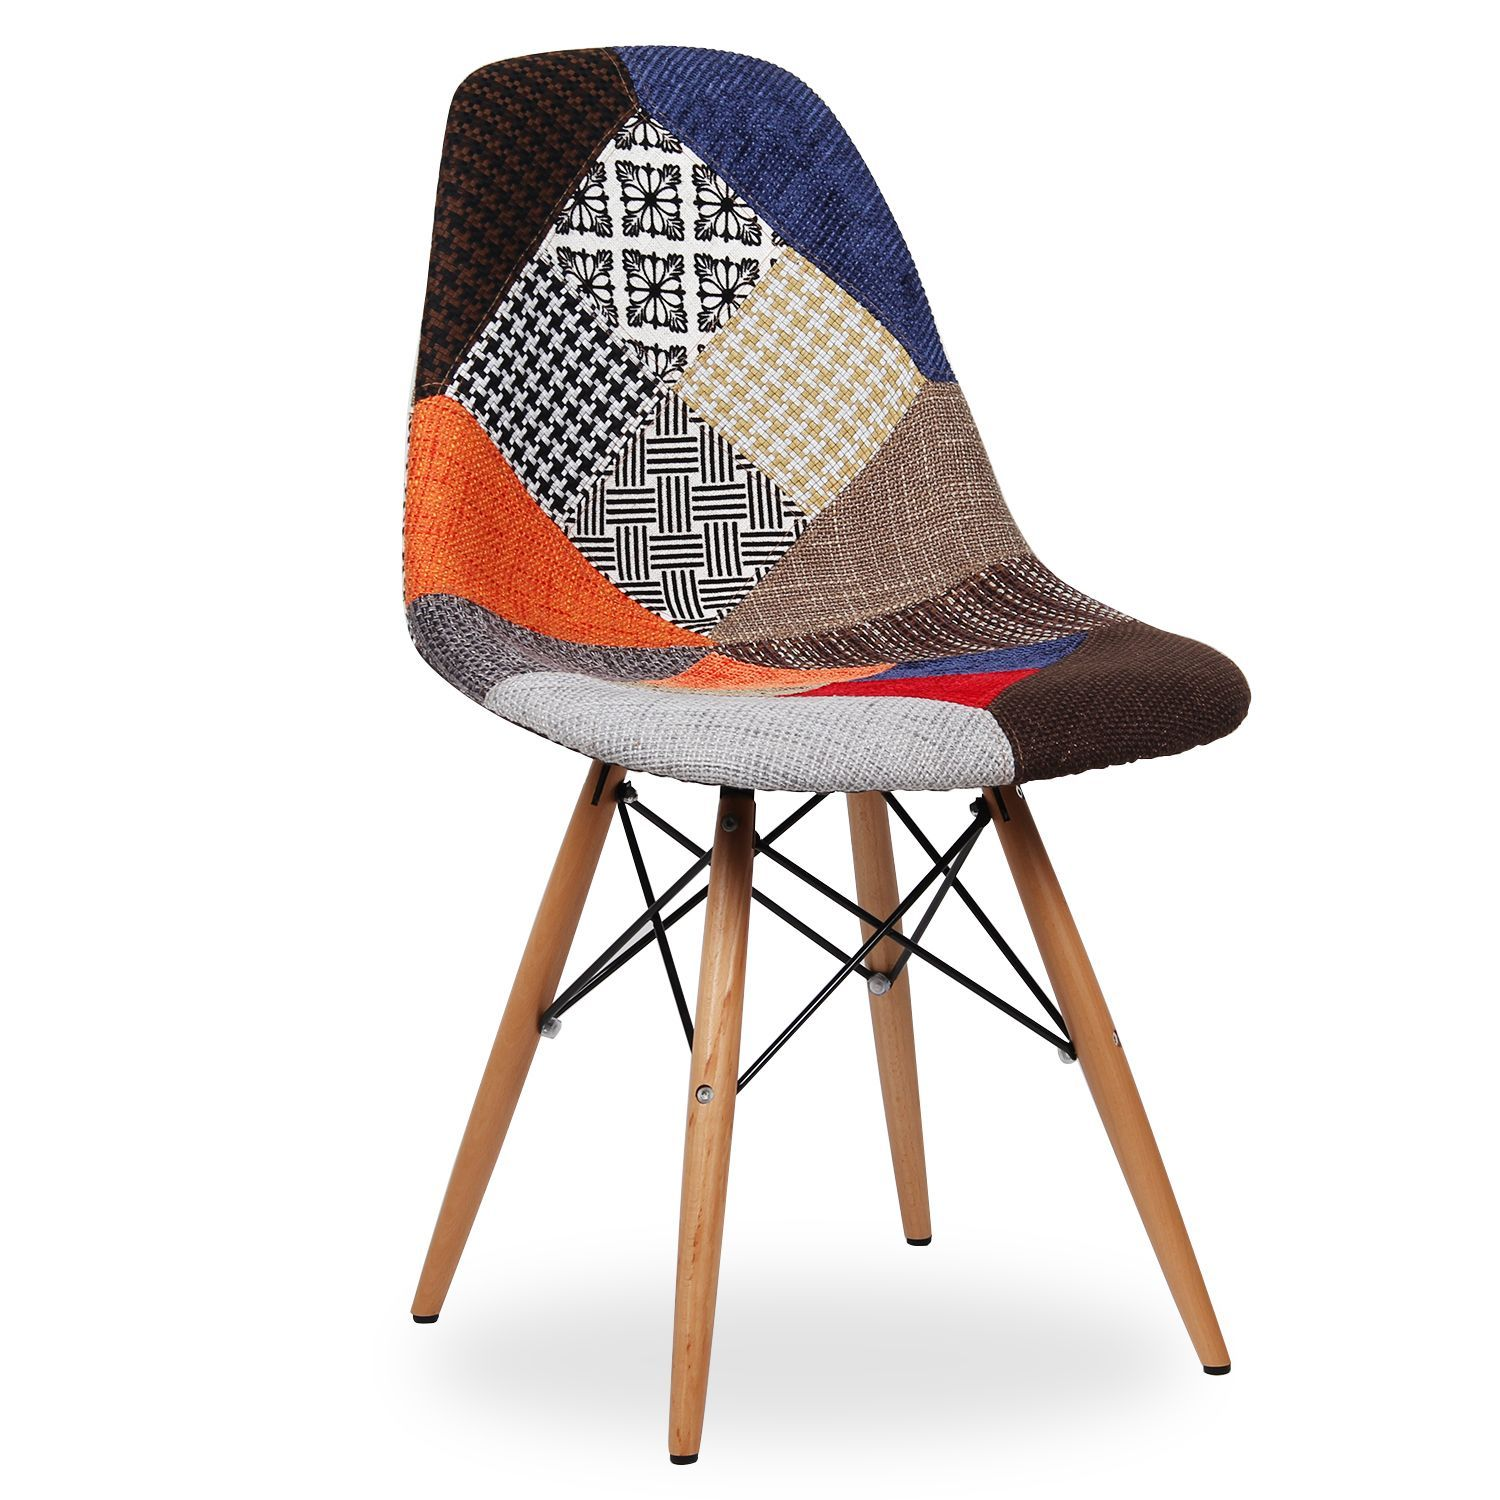 Silla wooden patchwork edition 2 sillas icono del dise o dsw patchwork - Chaise charles eames dsw ...